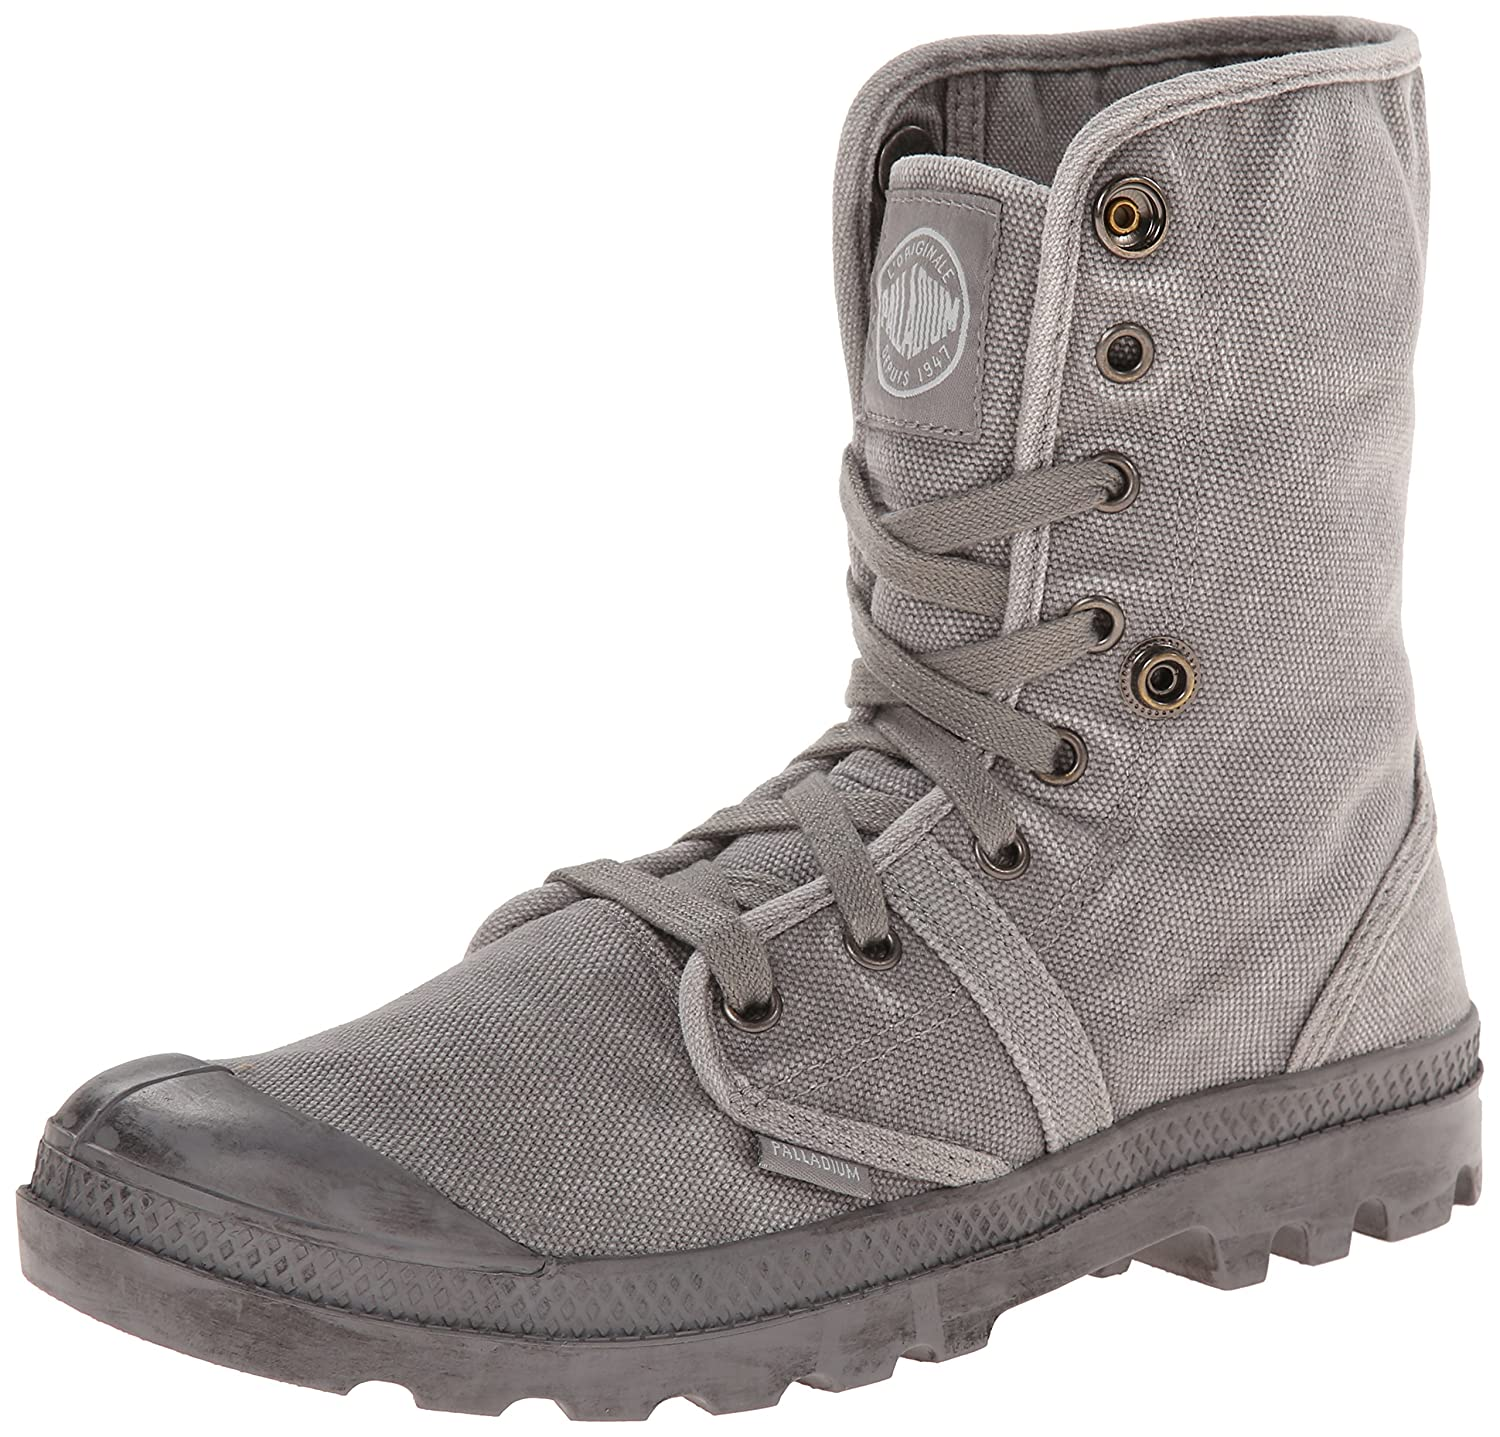 Palladium Pallabrouse Baggy 92478 066 Damen Boots & Stiefeletten in